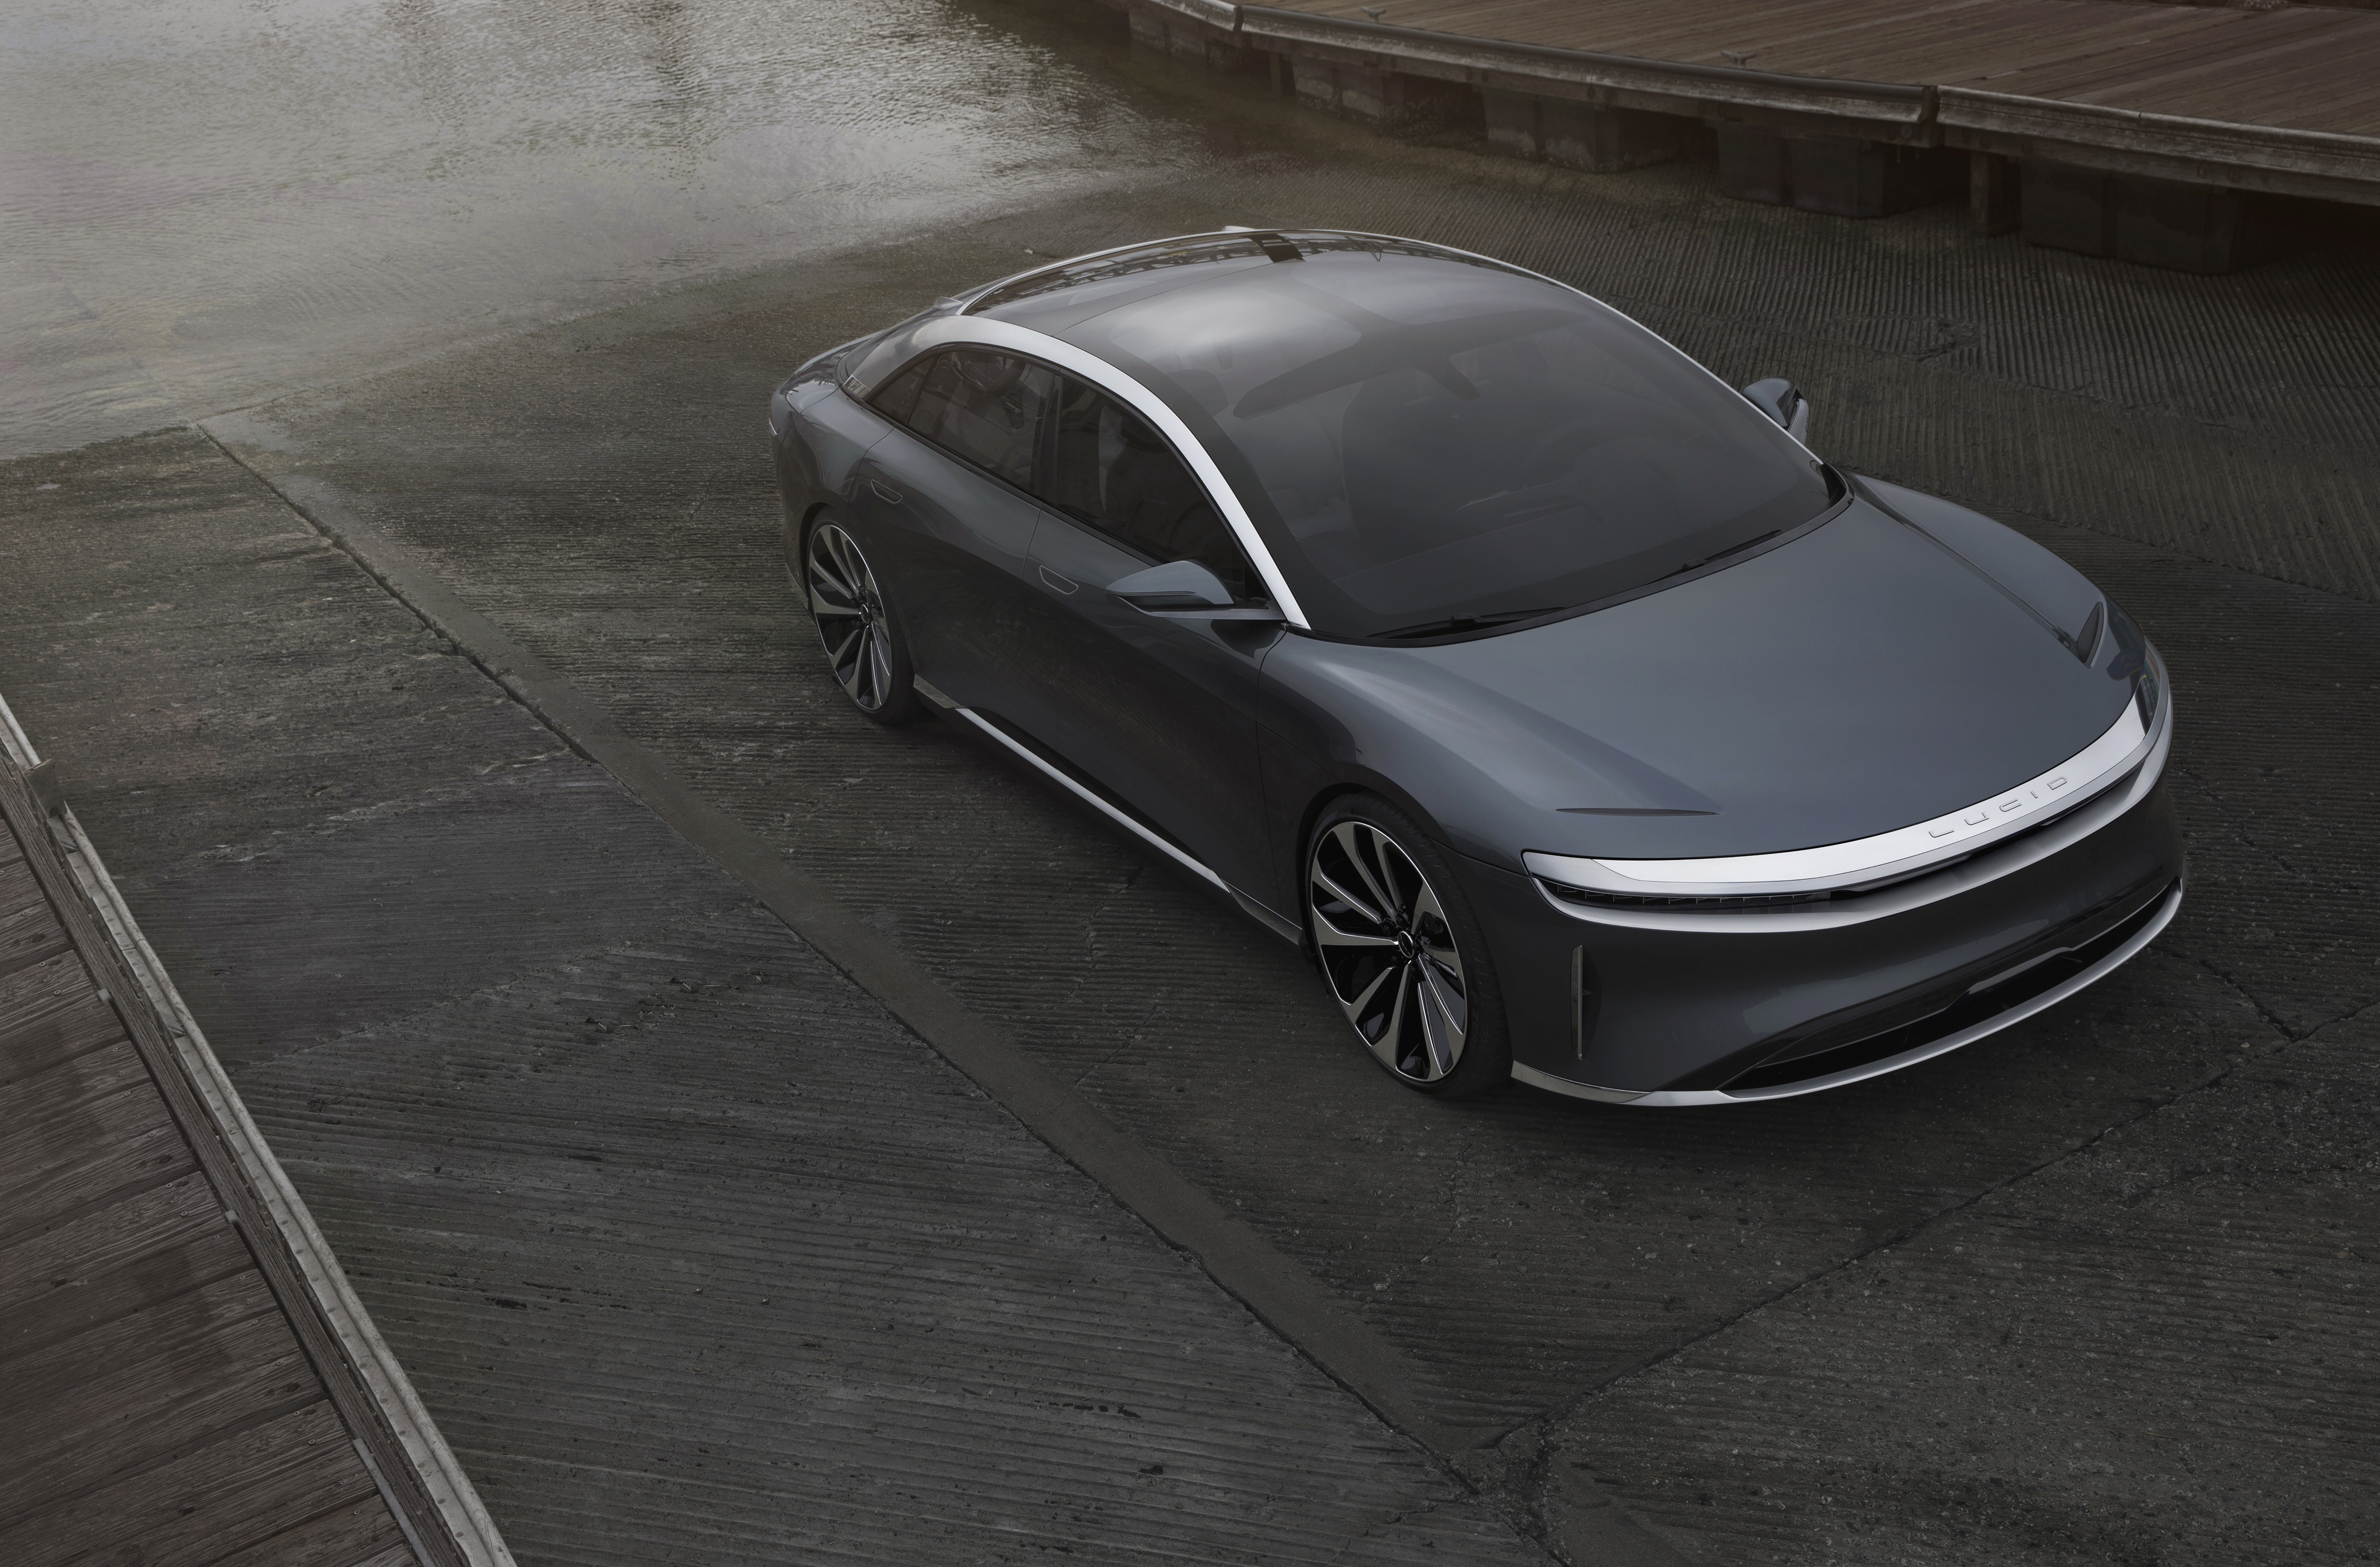 The New Lucid Air All-Electric Sedan